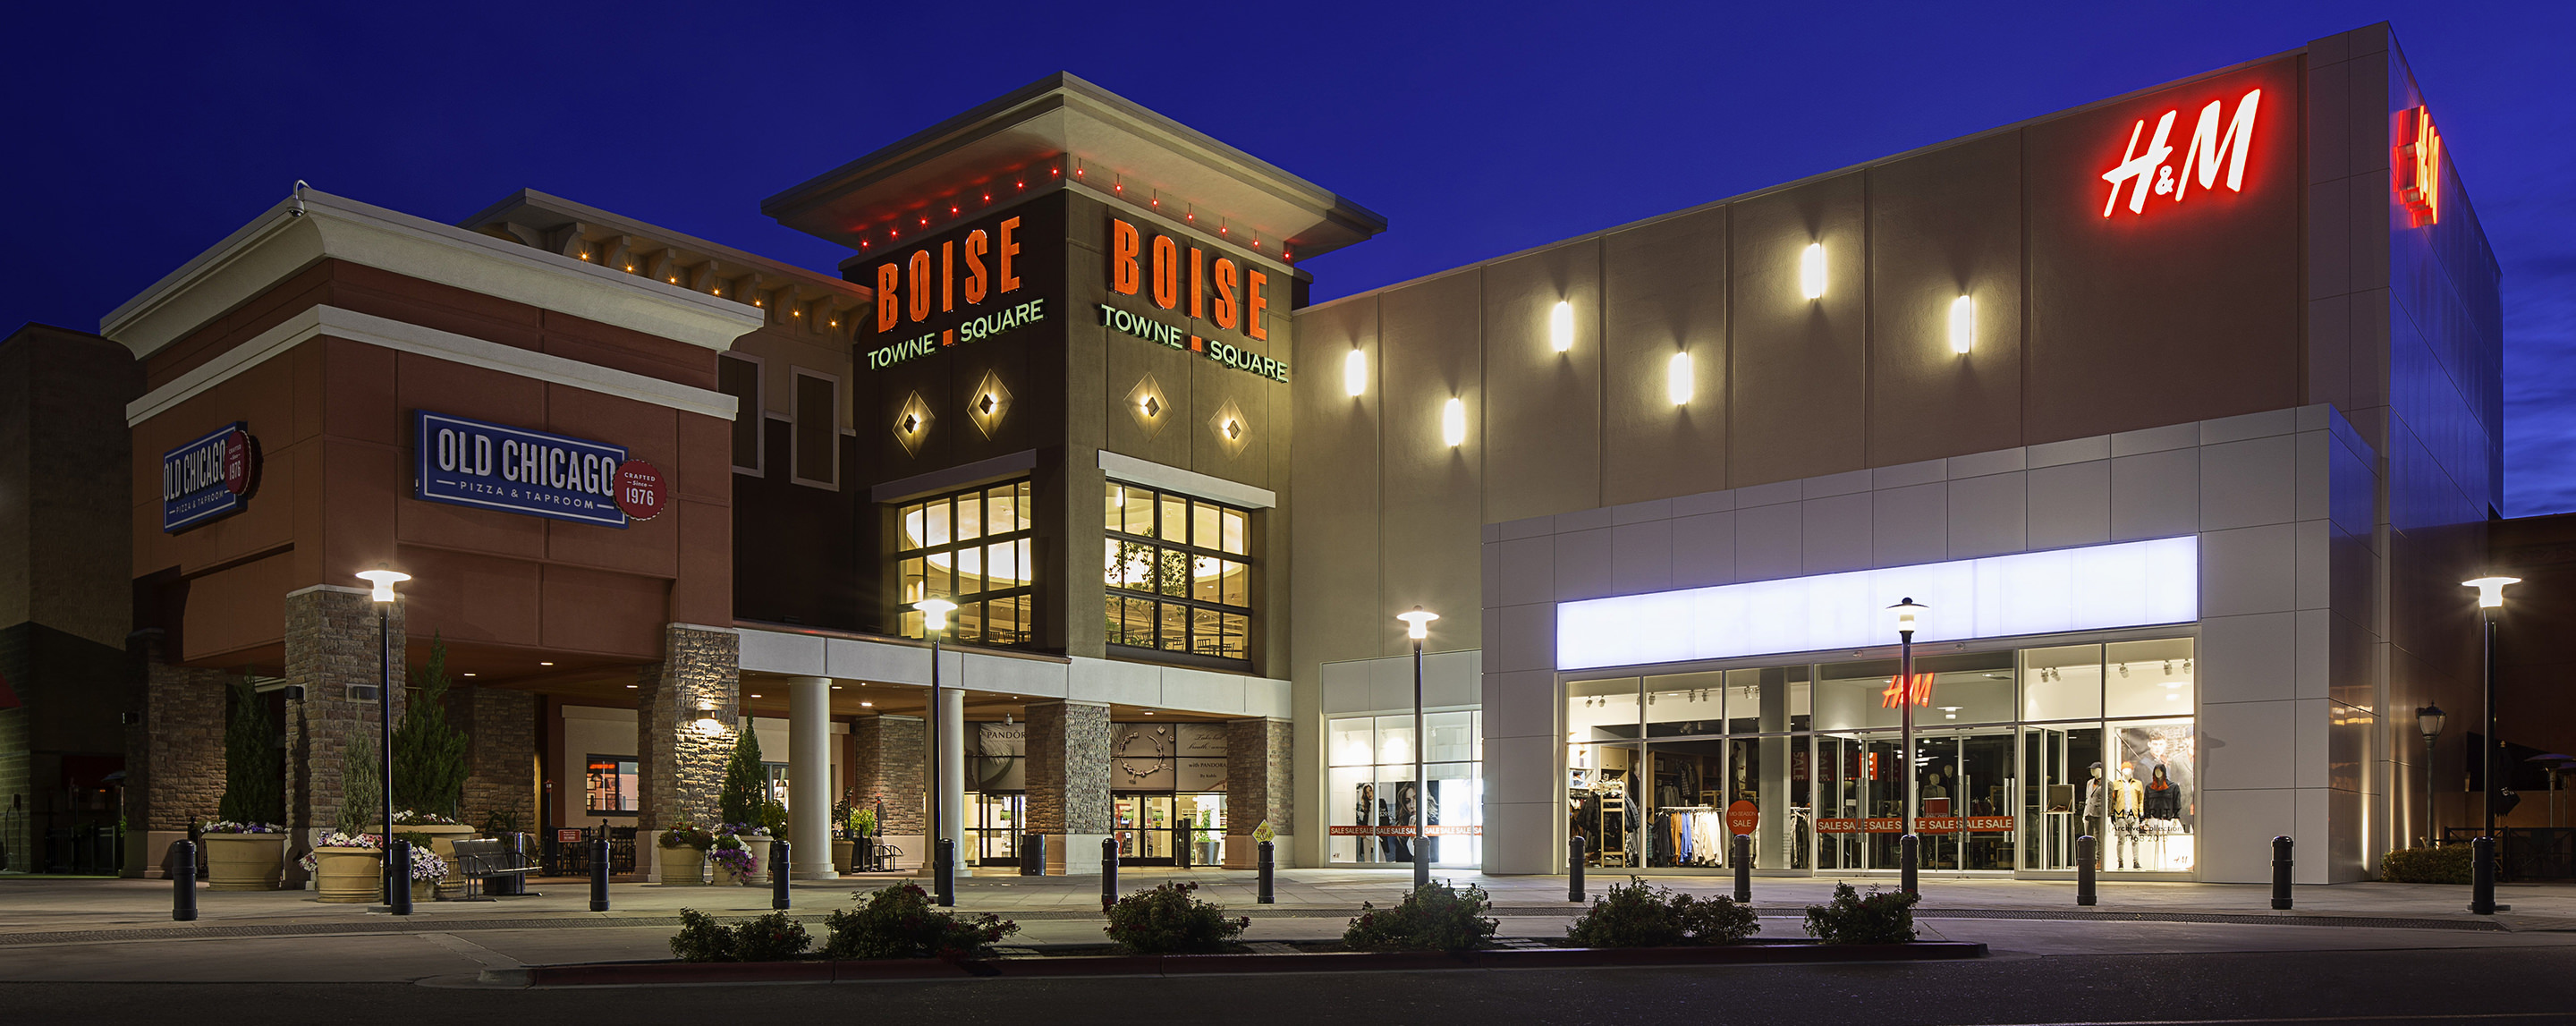 Outside Boise Town Square at night, the property is lit up showcasing H&M and a mall entrance decorated with greenery.